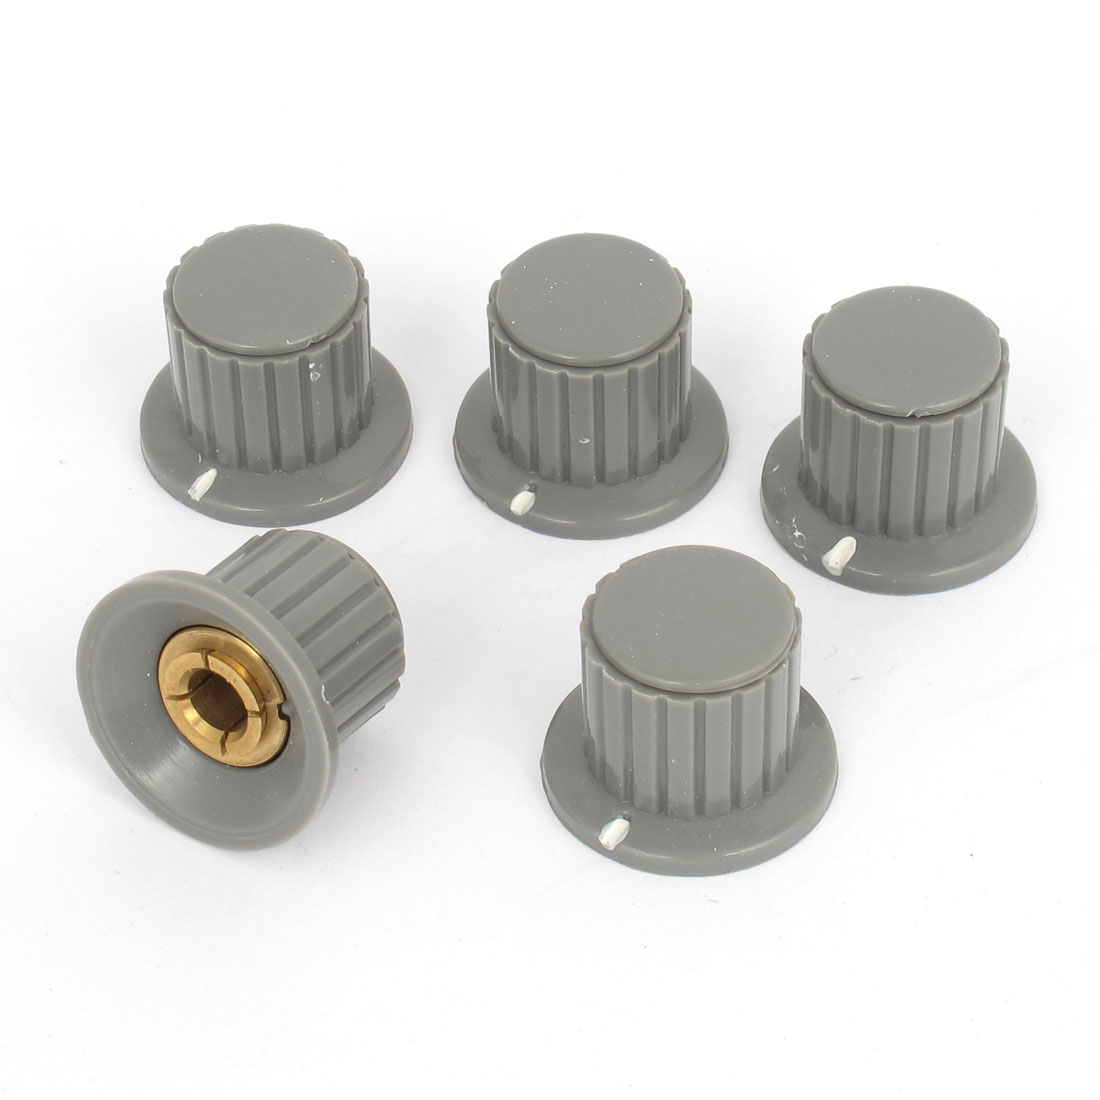 5 Pcs Gray Ribbed Grip 6mm Split Shaft Potentiometer Control Knobs